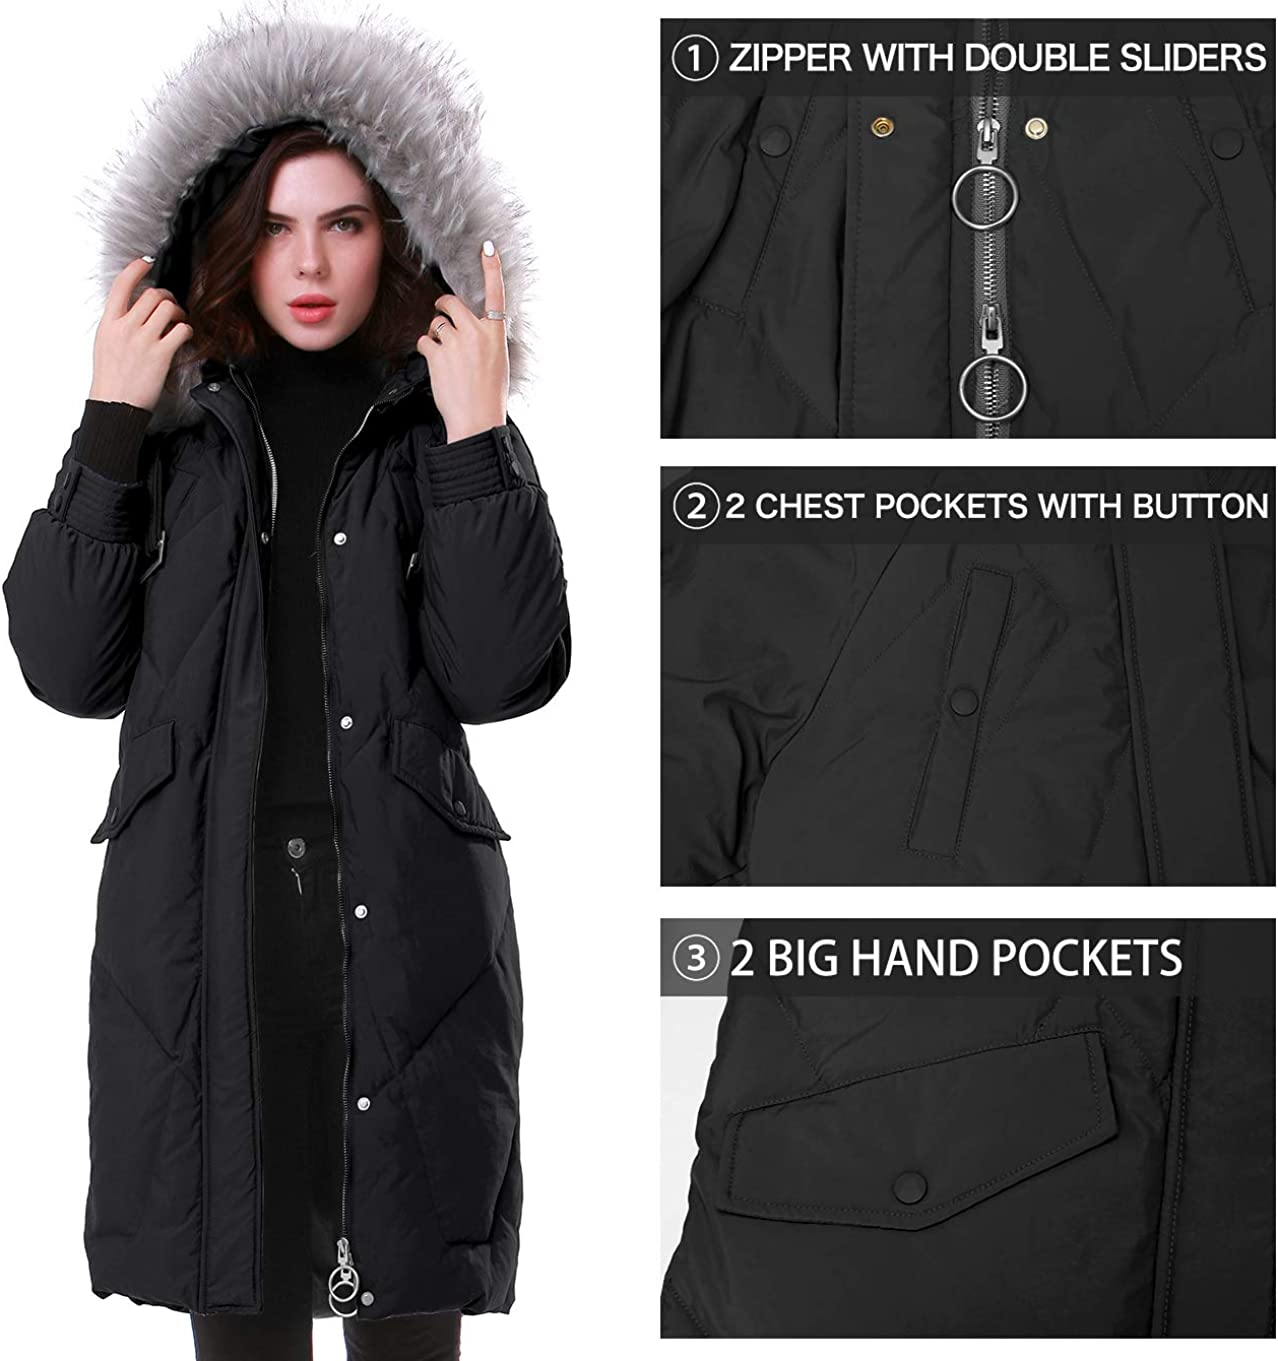 MORCOE Womens Thickened Long Down Puffer Jacket Winter Outdoor Anorak Coat Oversize Outerwear Hooded Down Parka